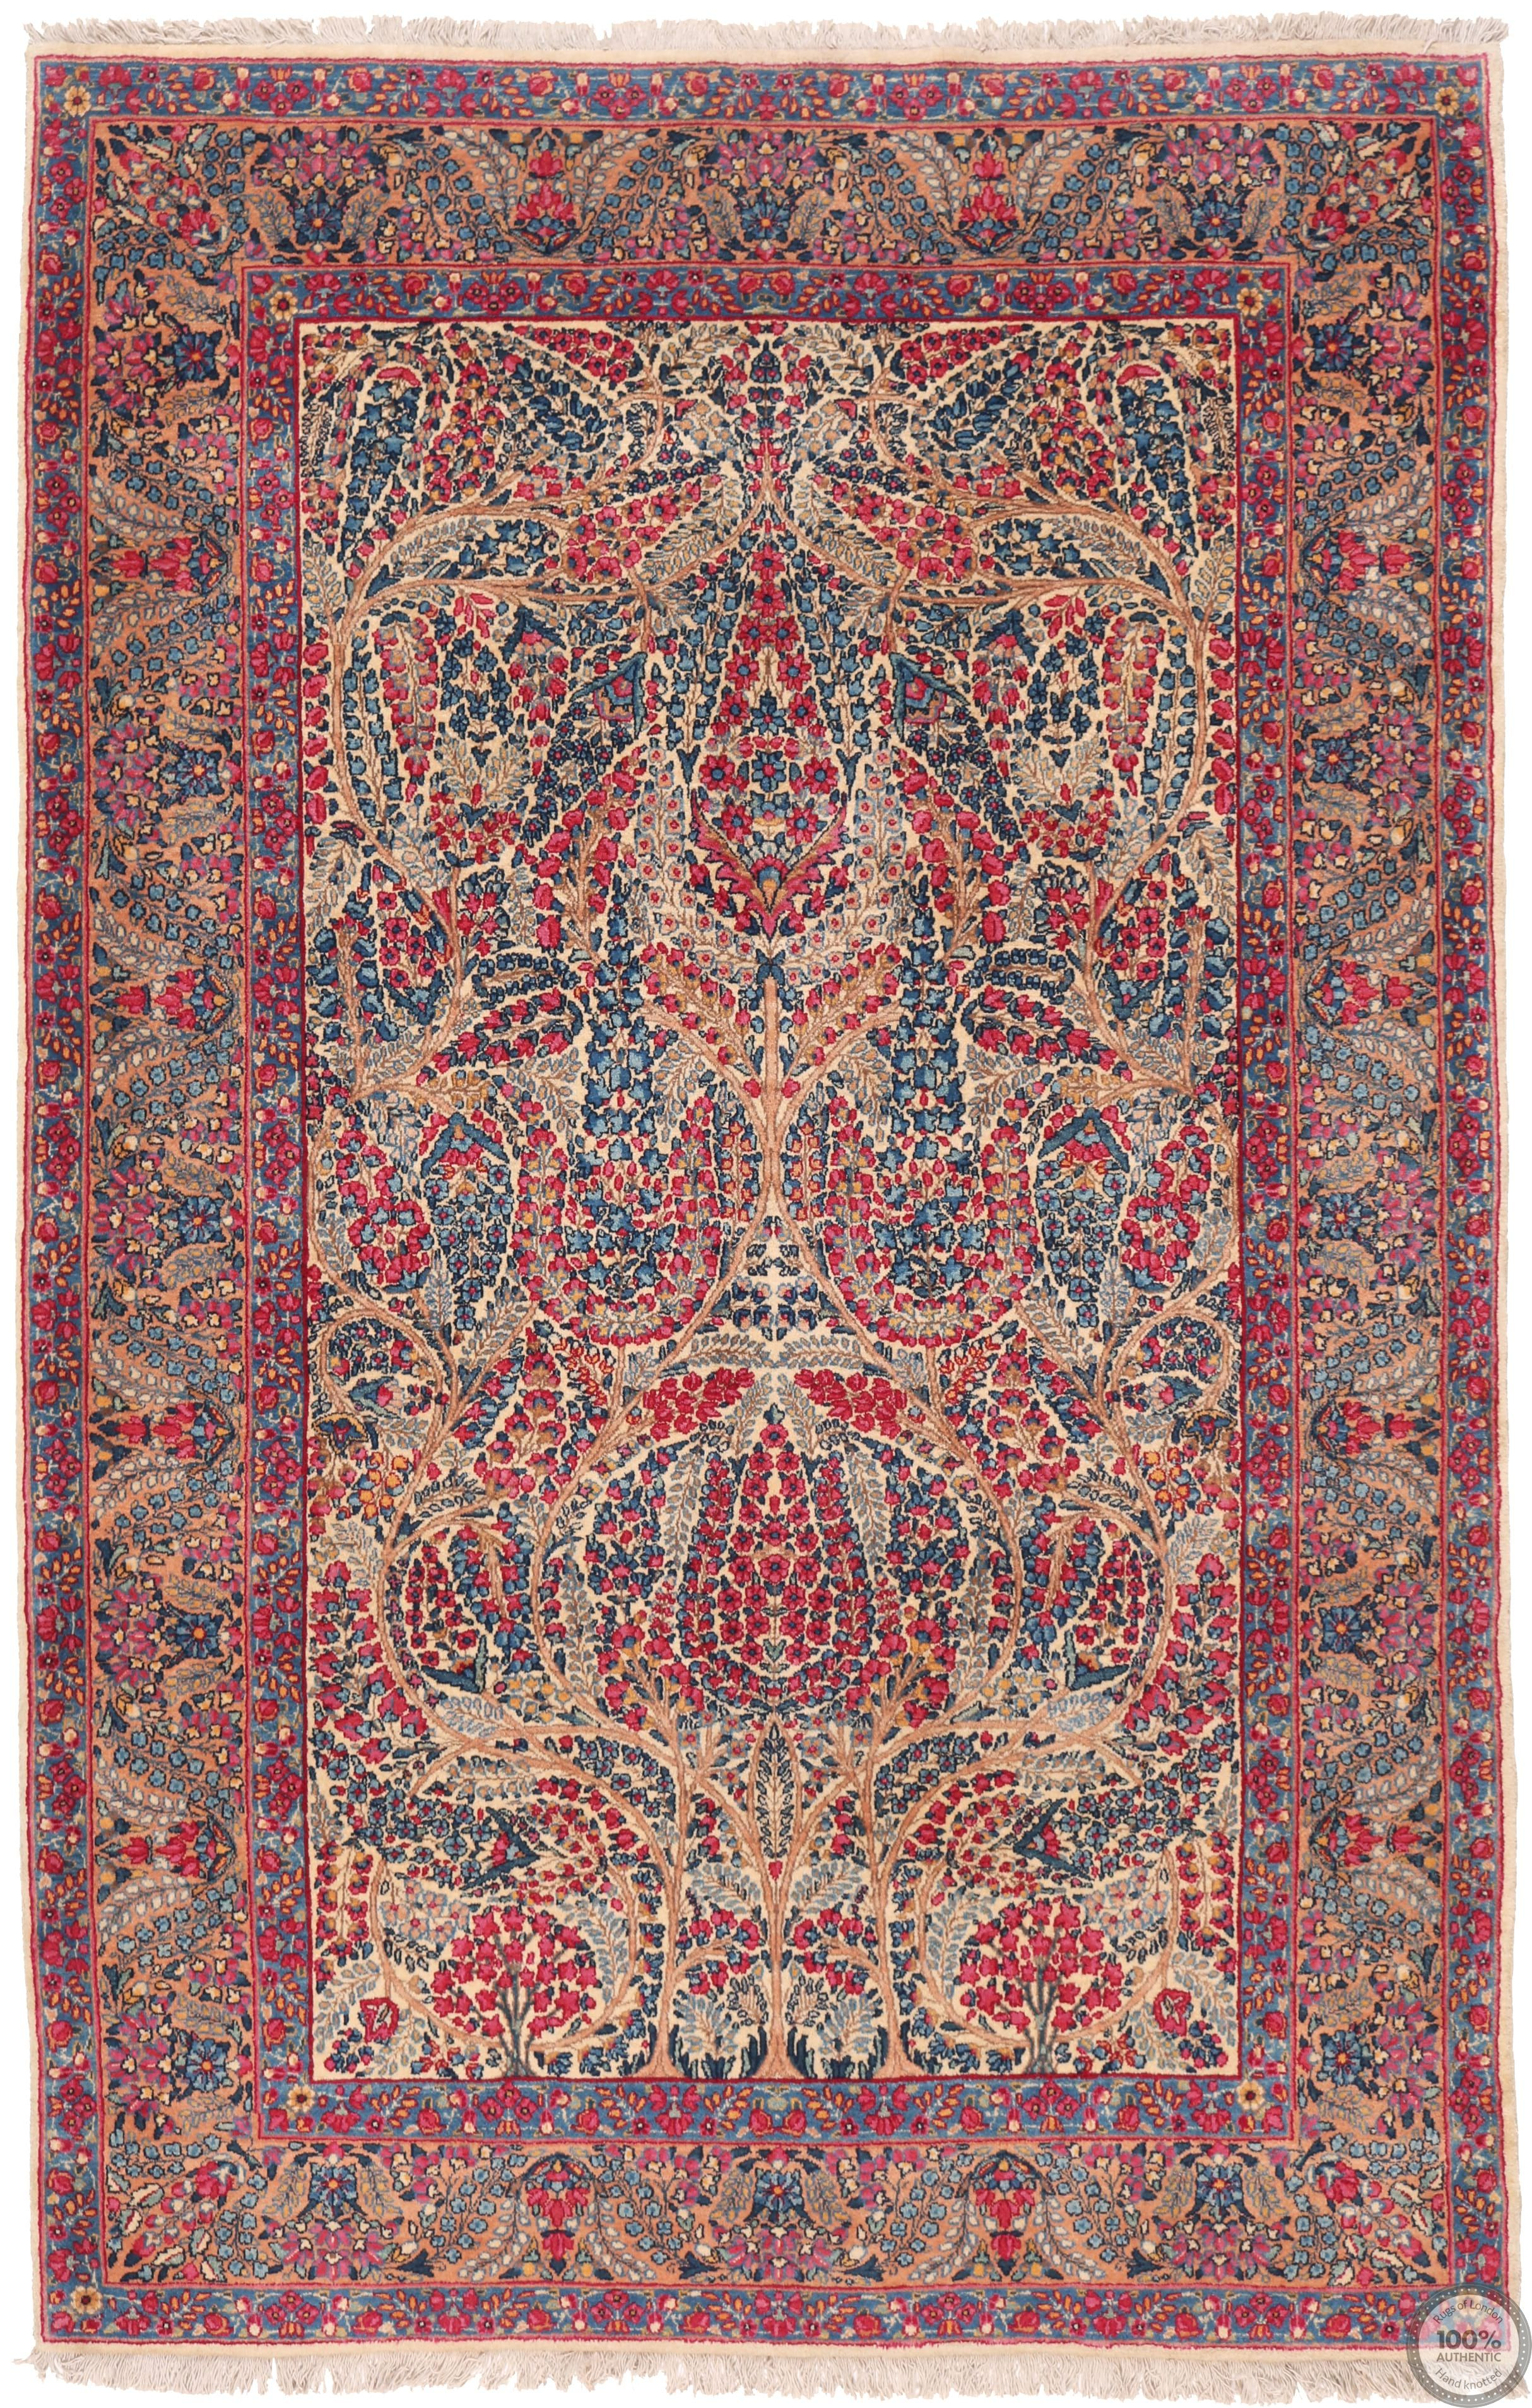 Antique Persian Lavar Kerman Rug - Circa 1920